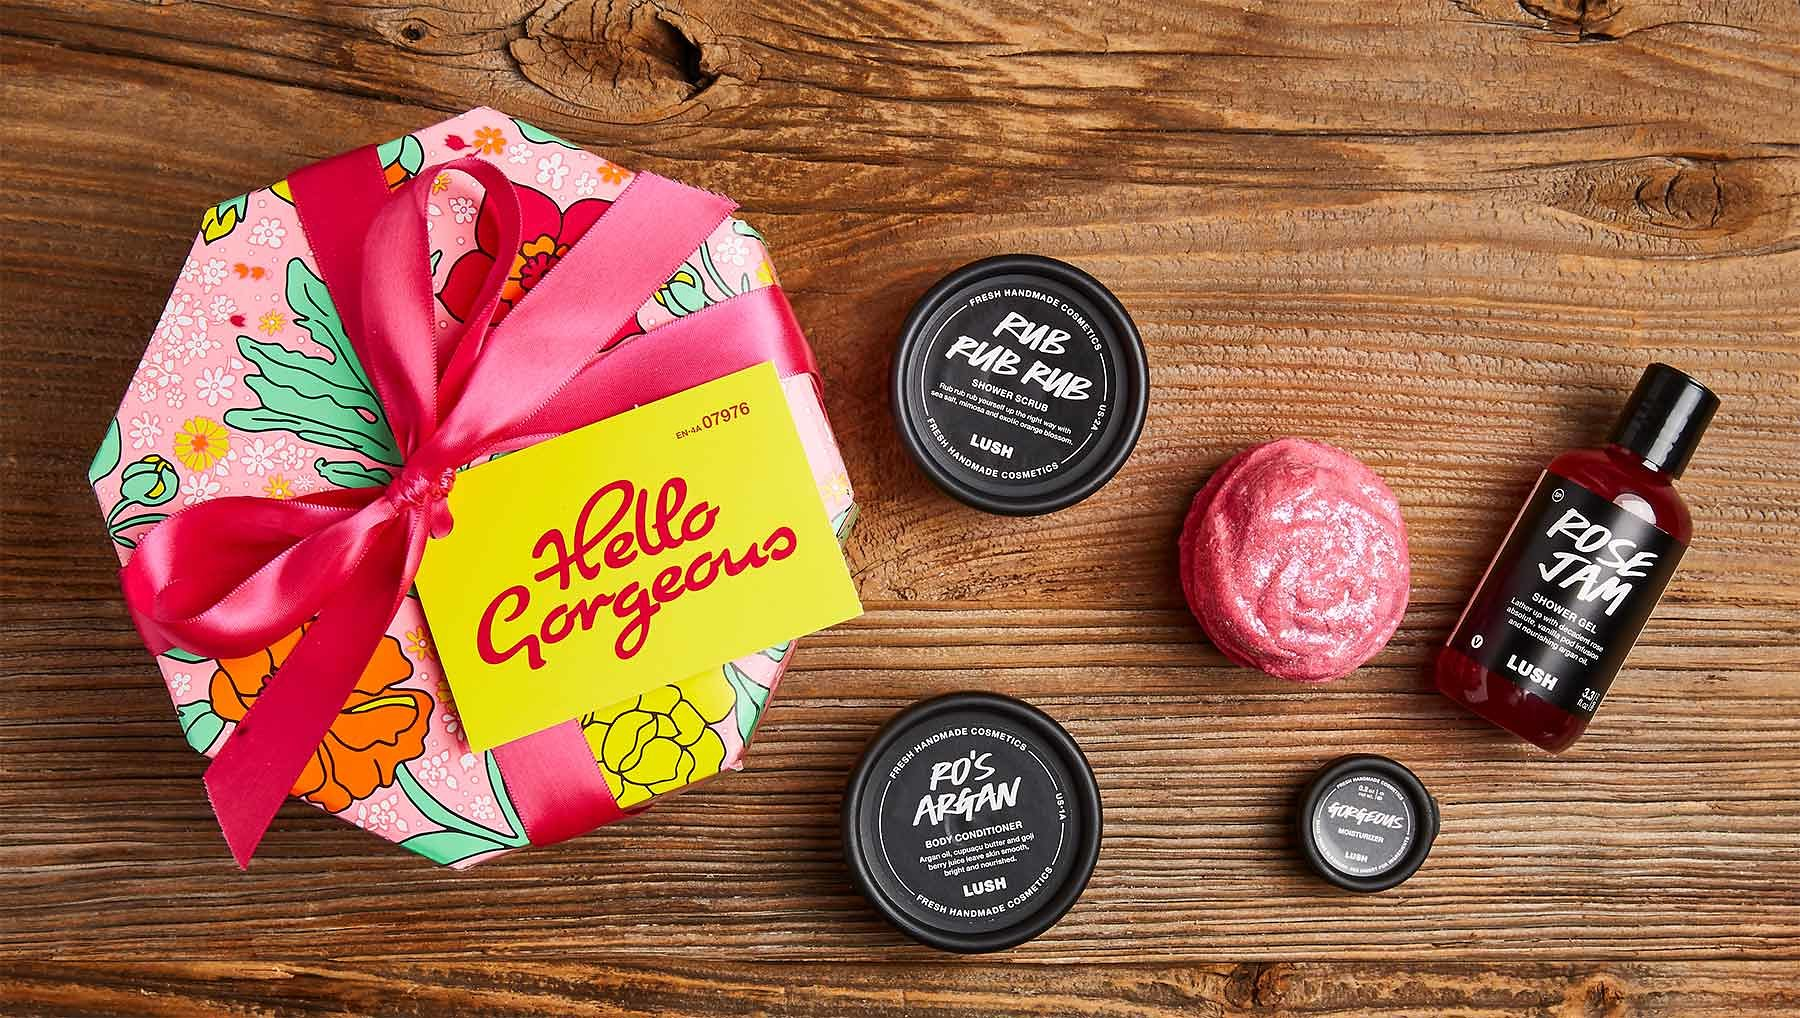 Hello Gorgeous - Lush Gift - She may already be the prettiest girl in the room, but no girl will ever say no to a spa night! This gift pack comes with all the right products to help her feel her best- Hello Gorgeous!